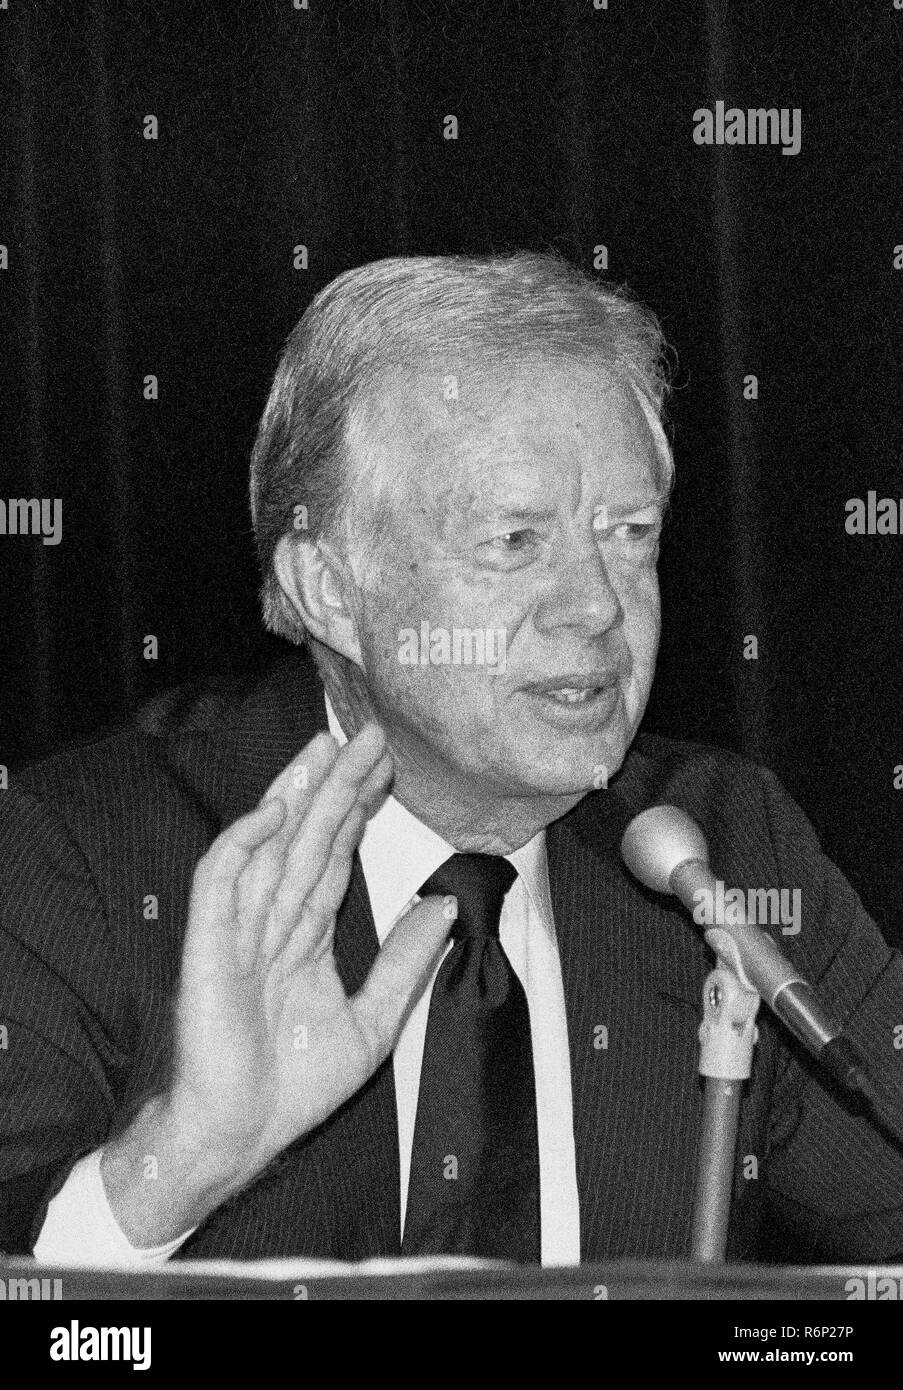 former American  President Jimmy Carter at the San Francisco press Club, California - Stock Image